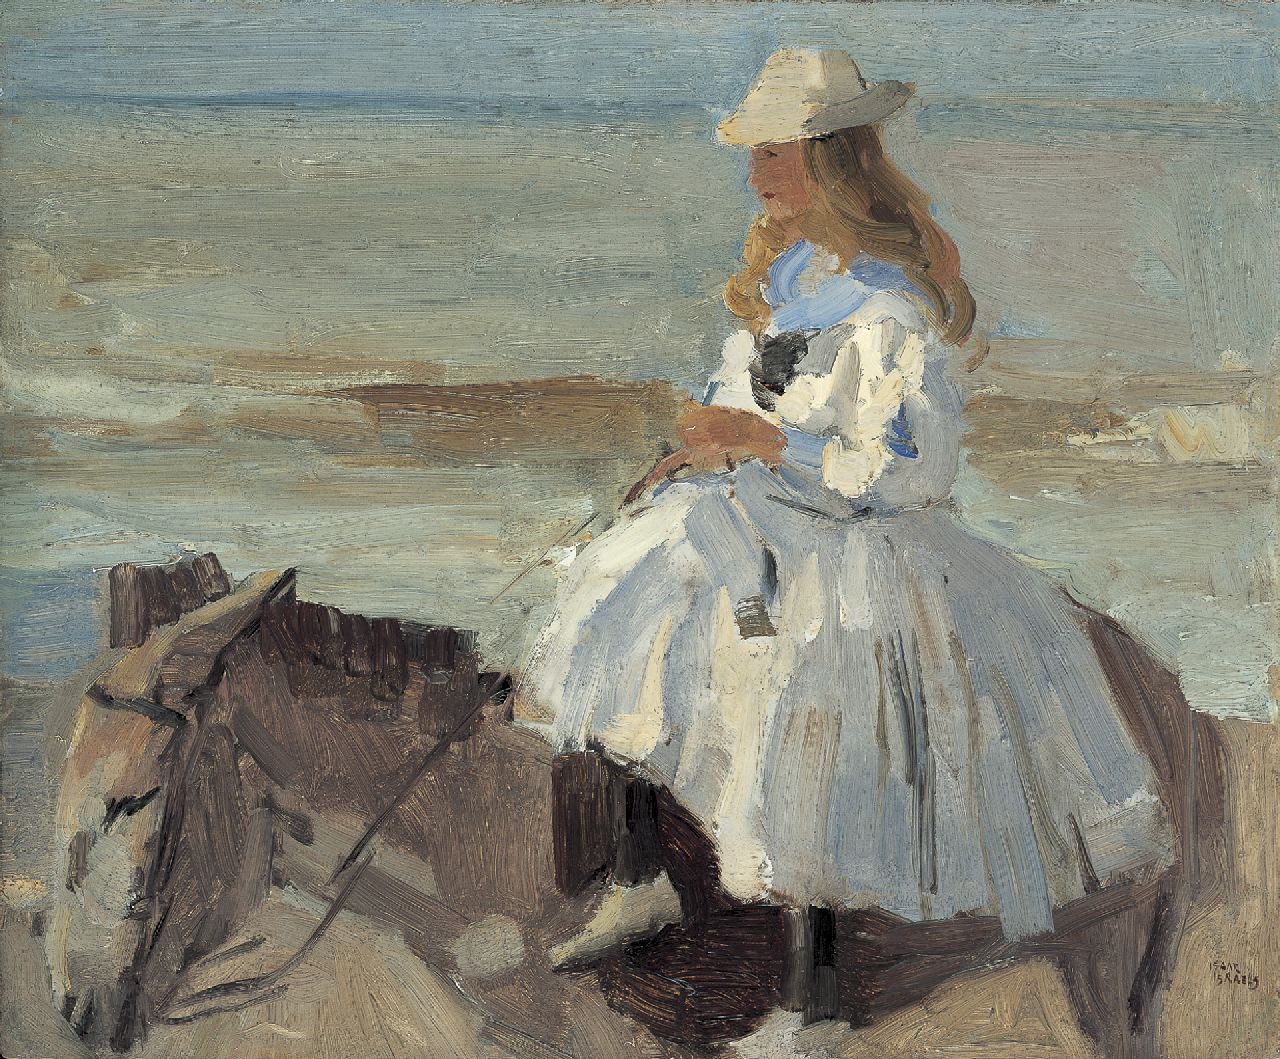 Israels I.L.  | 'Isaac' Lazarus Israels, A donkey ride, oil on board 46.1 x 56.1 cm, signed l.r.